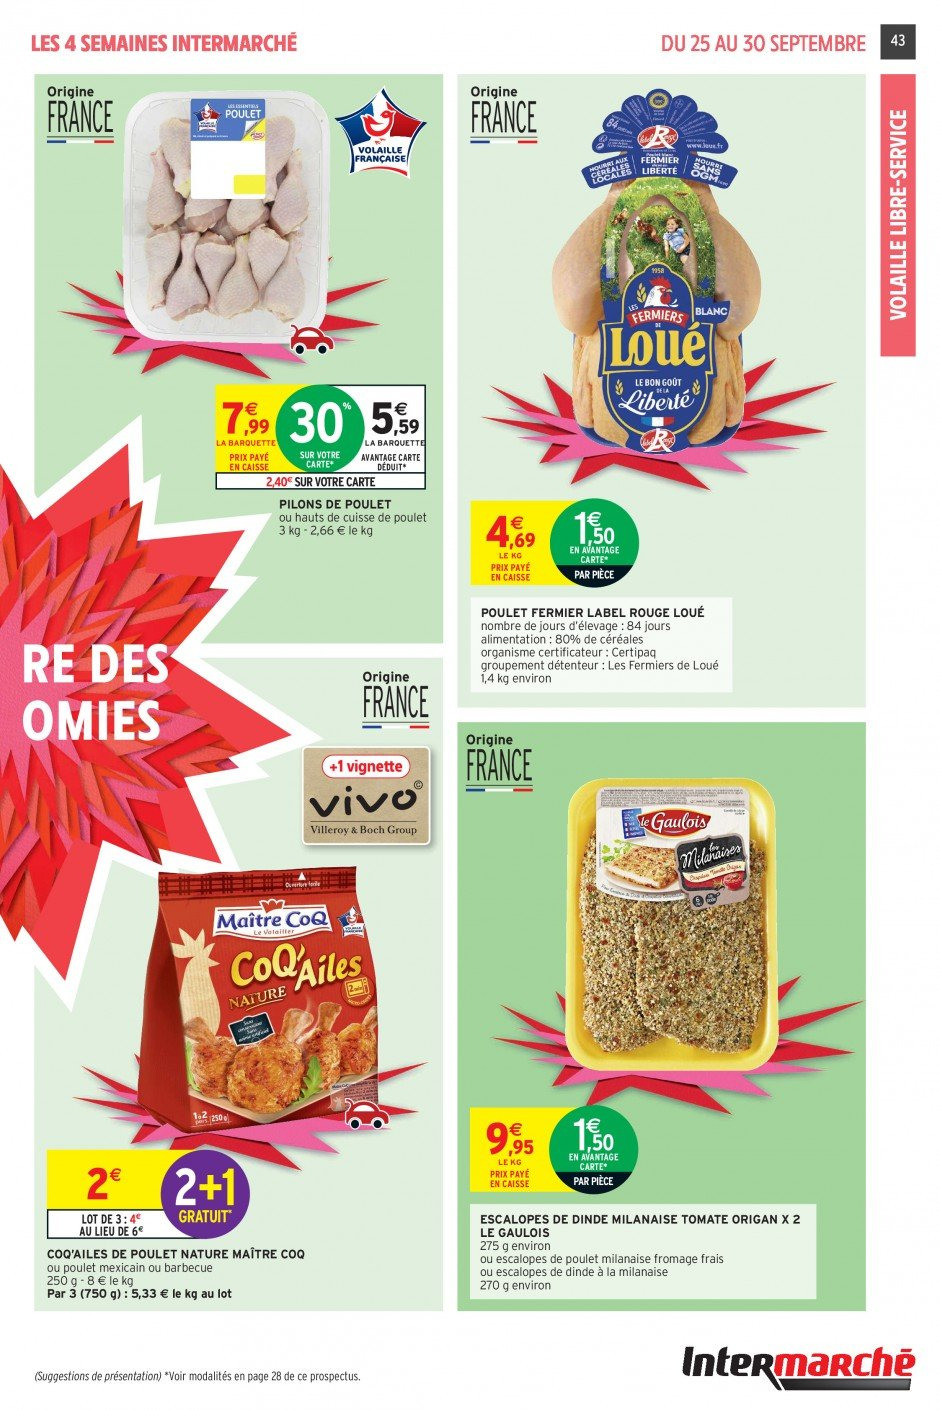 Catalogue Intermarché - 25.09.2018 - 30.09.2018. Page 43.